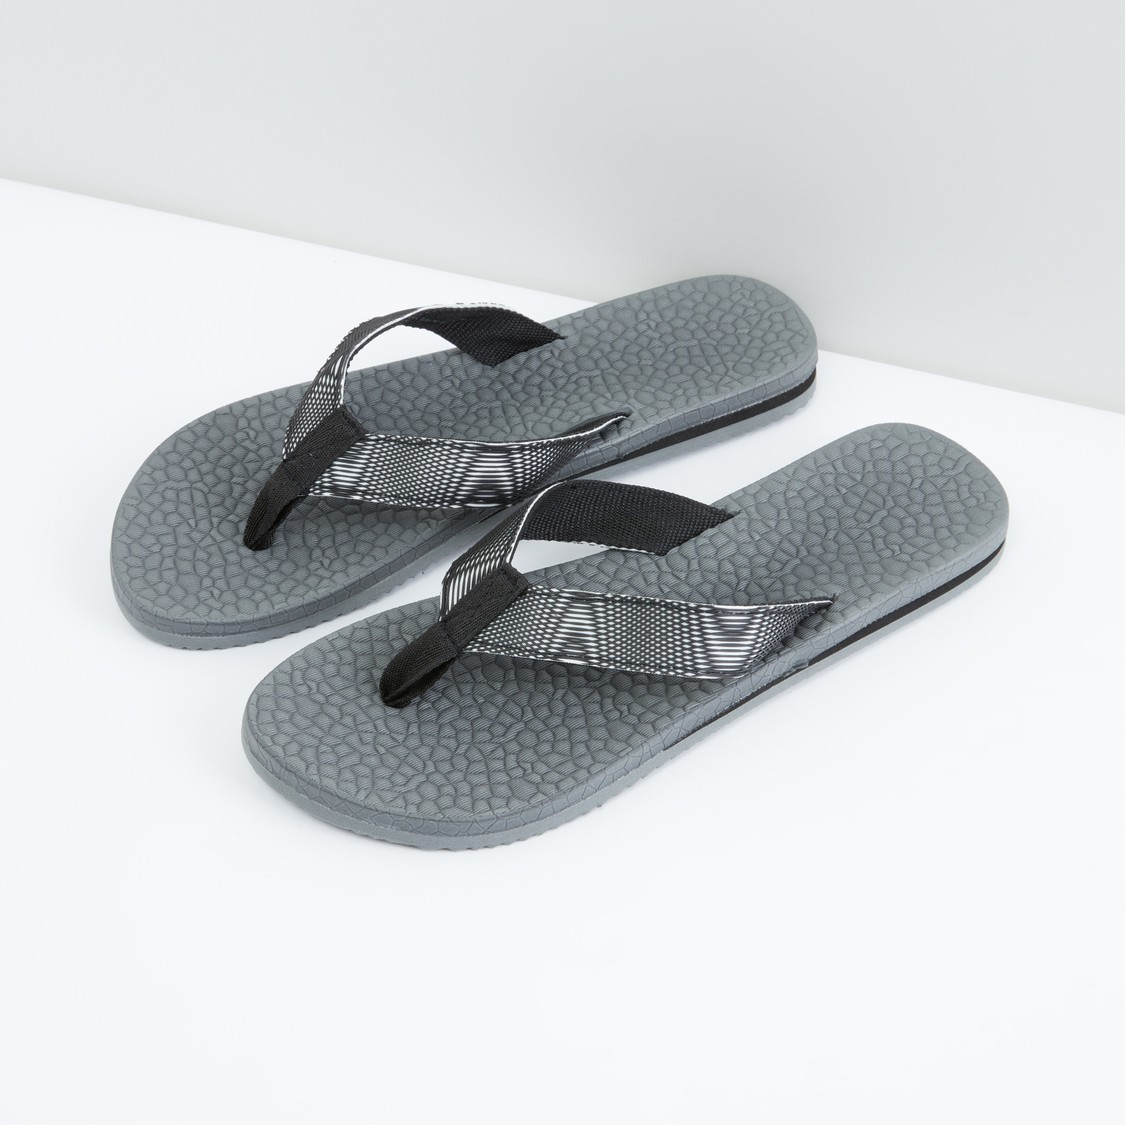 Textured Flip Flops with Broad Straps